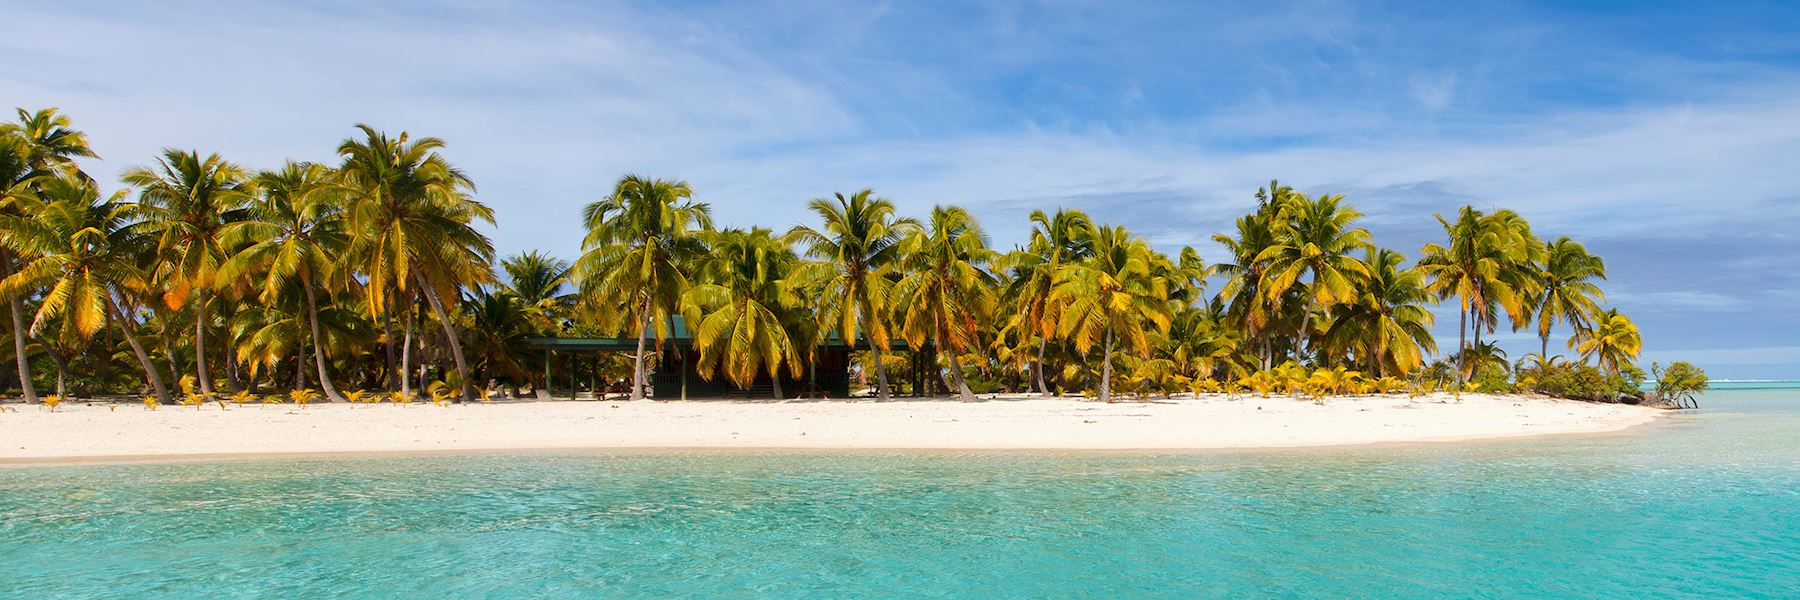 Visit Aitutaki, Cook Islands